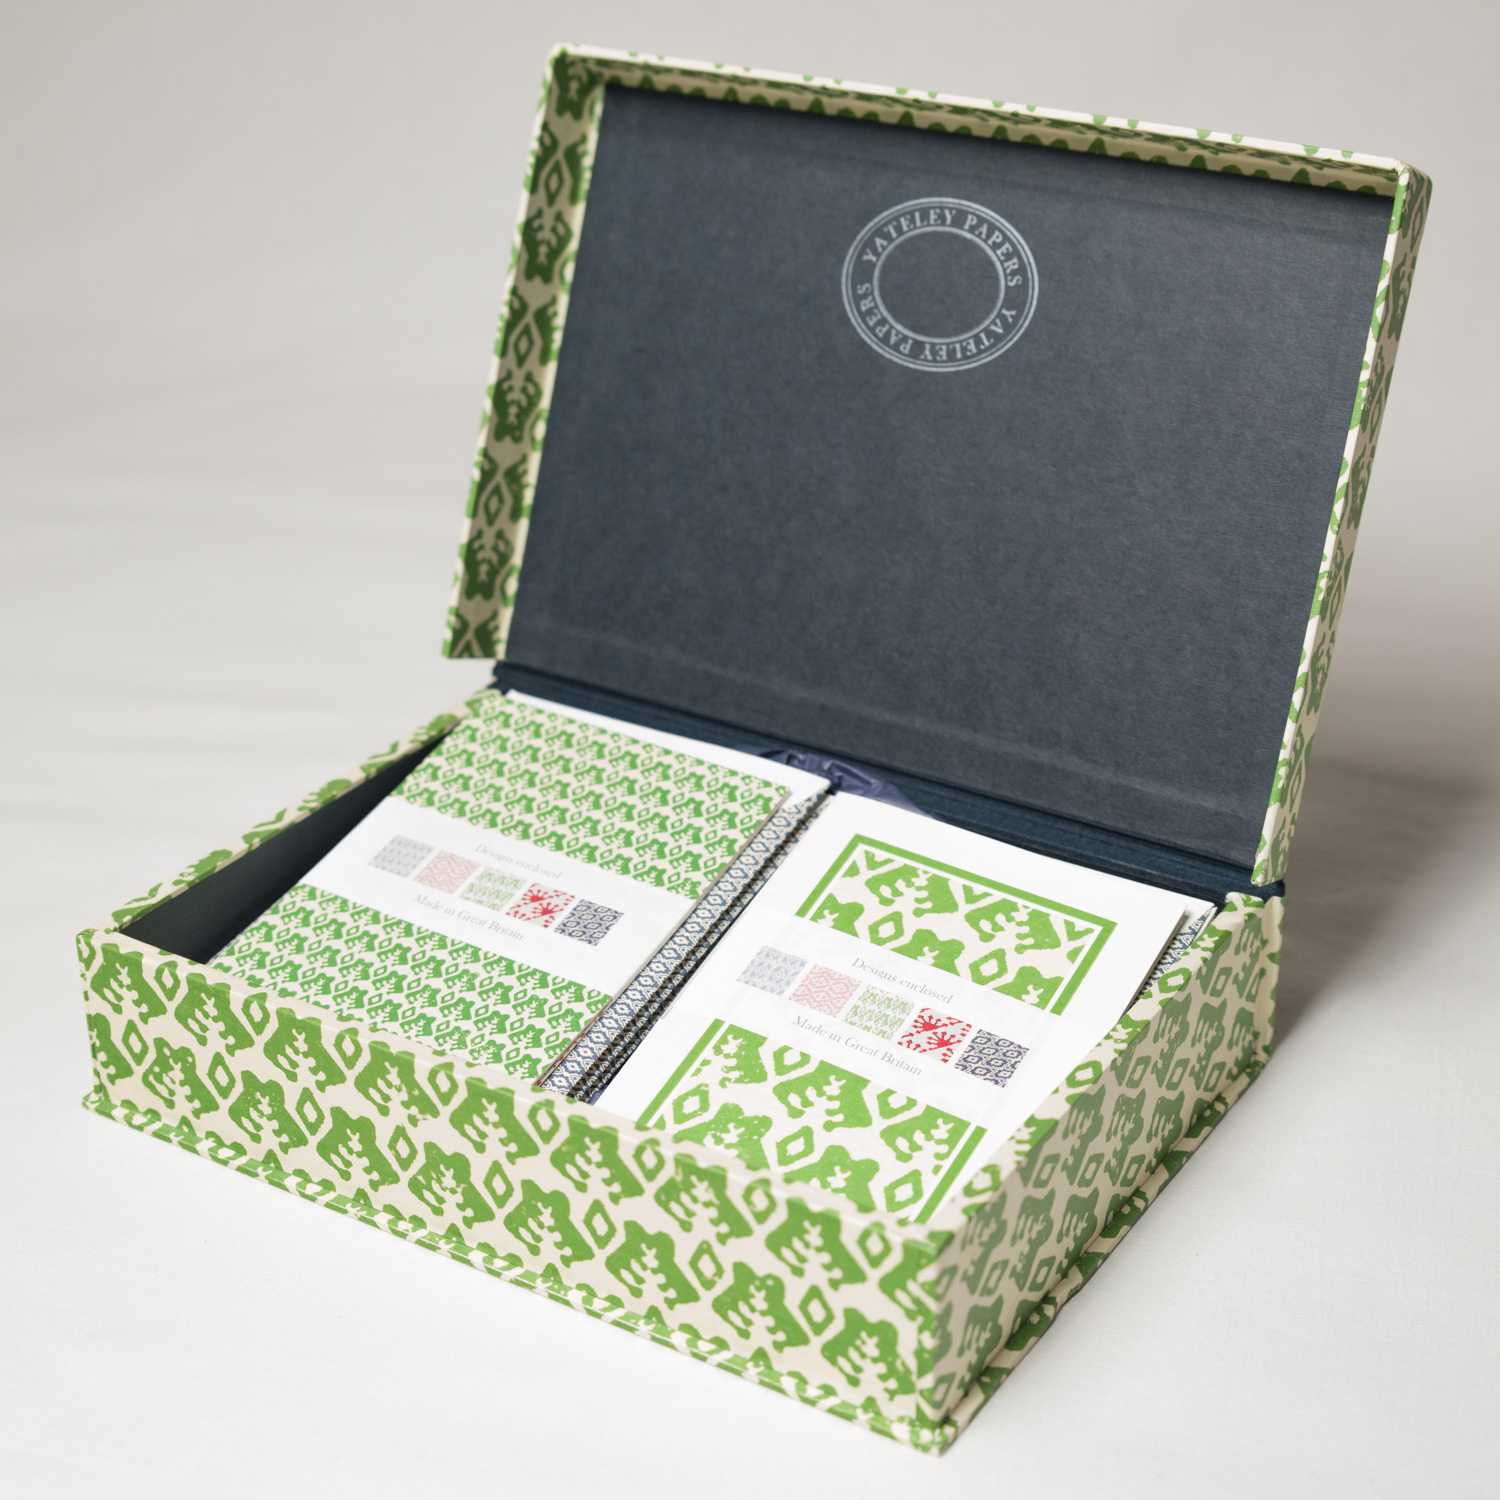 Small Box with Cards